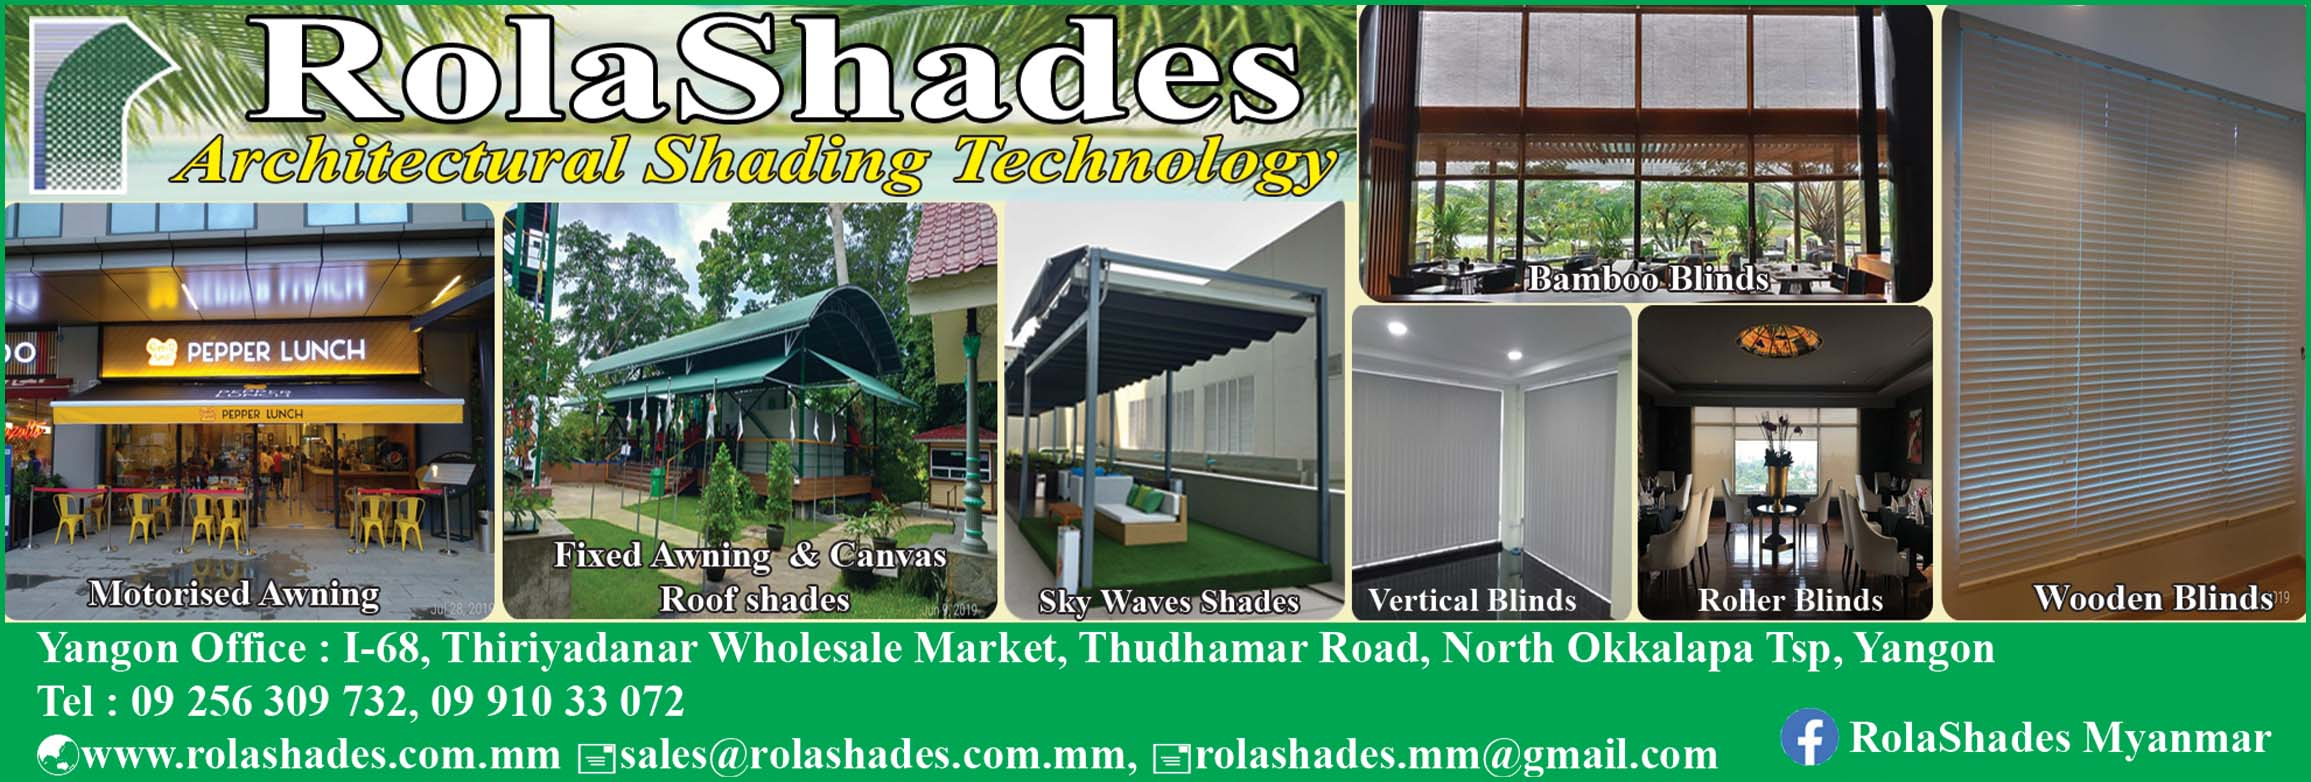 RolaShades Myanmar Co., Ltd.